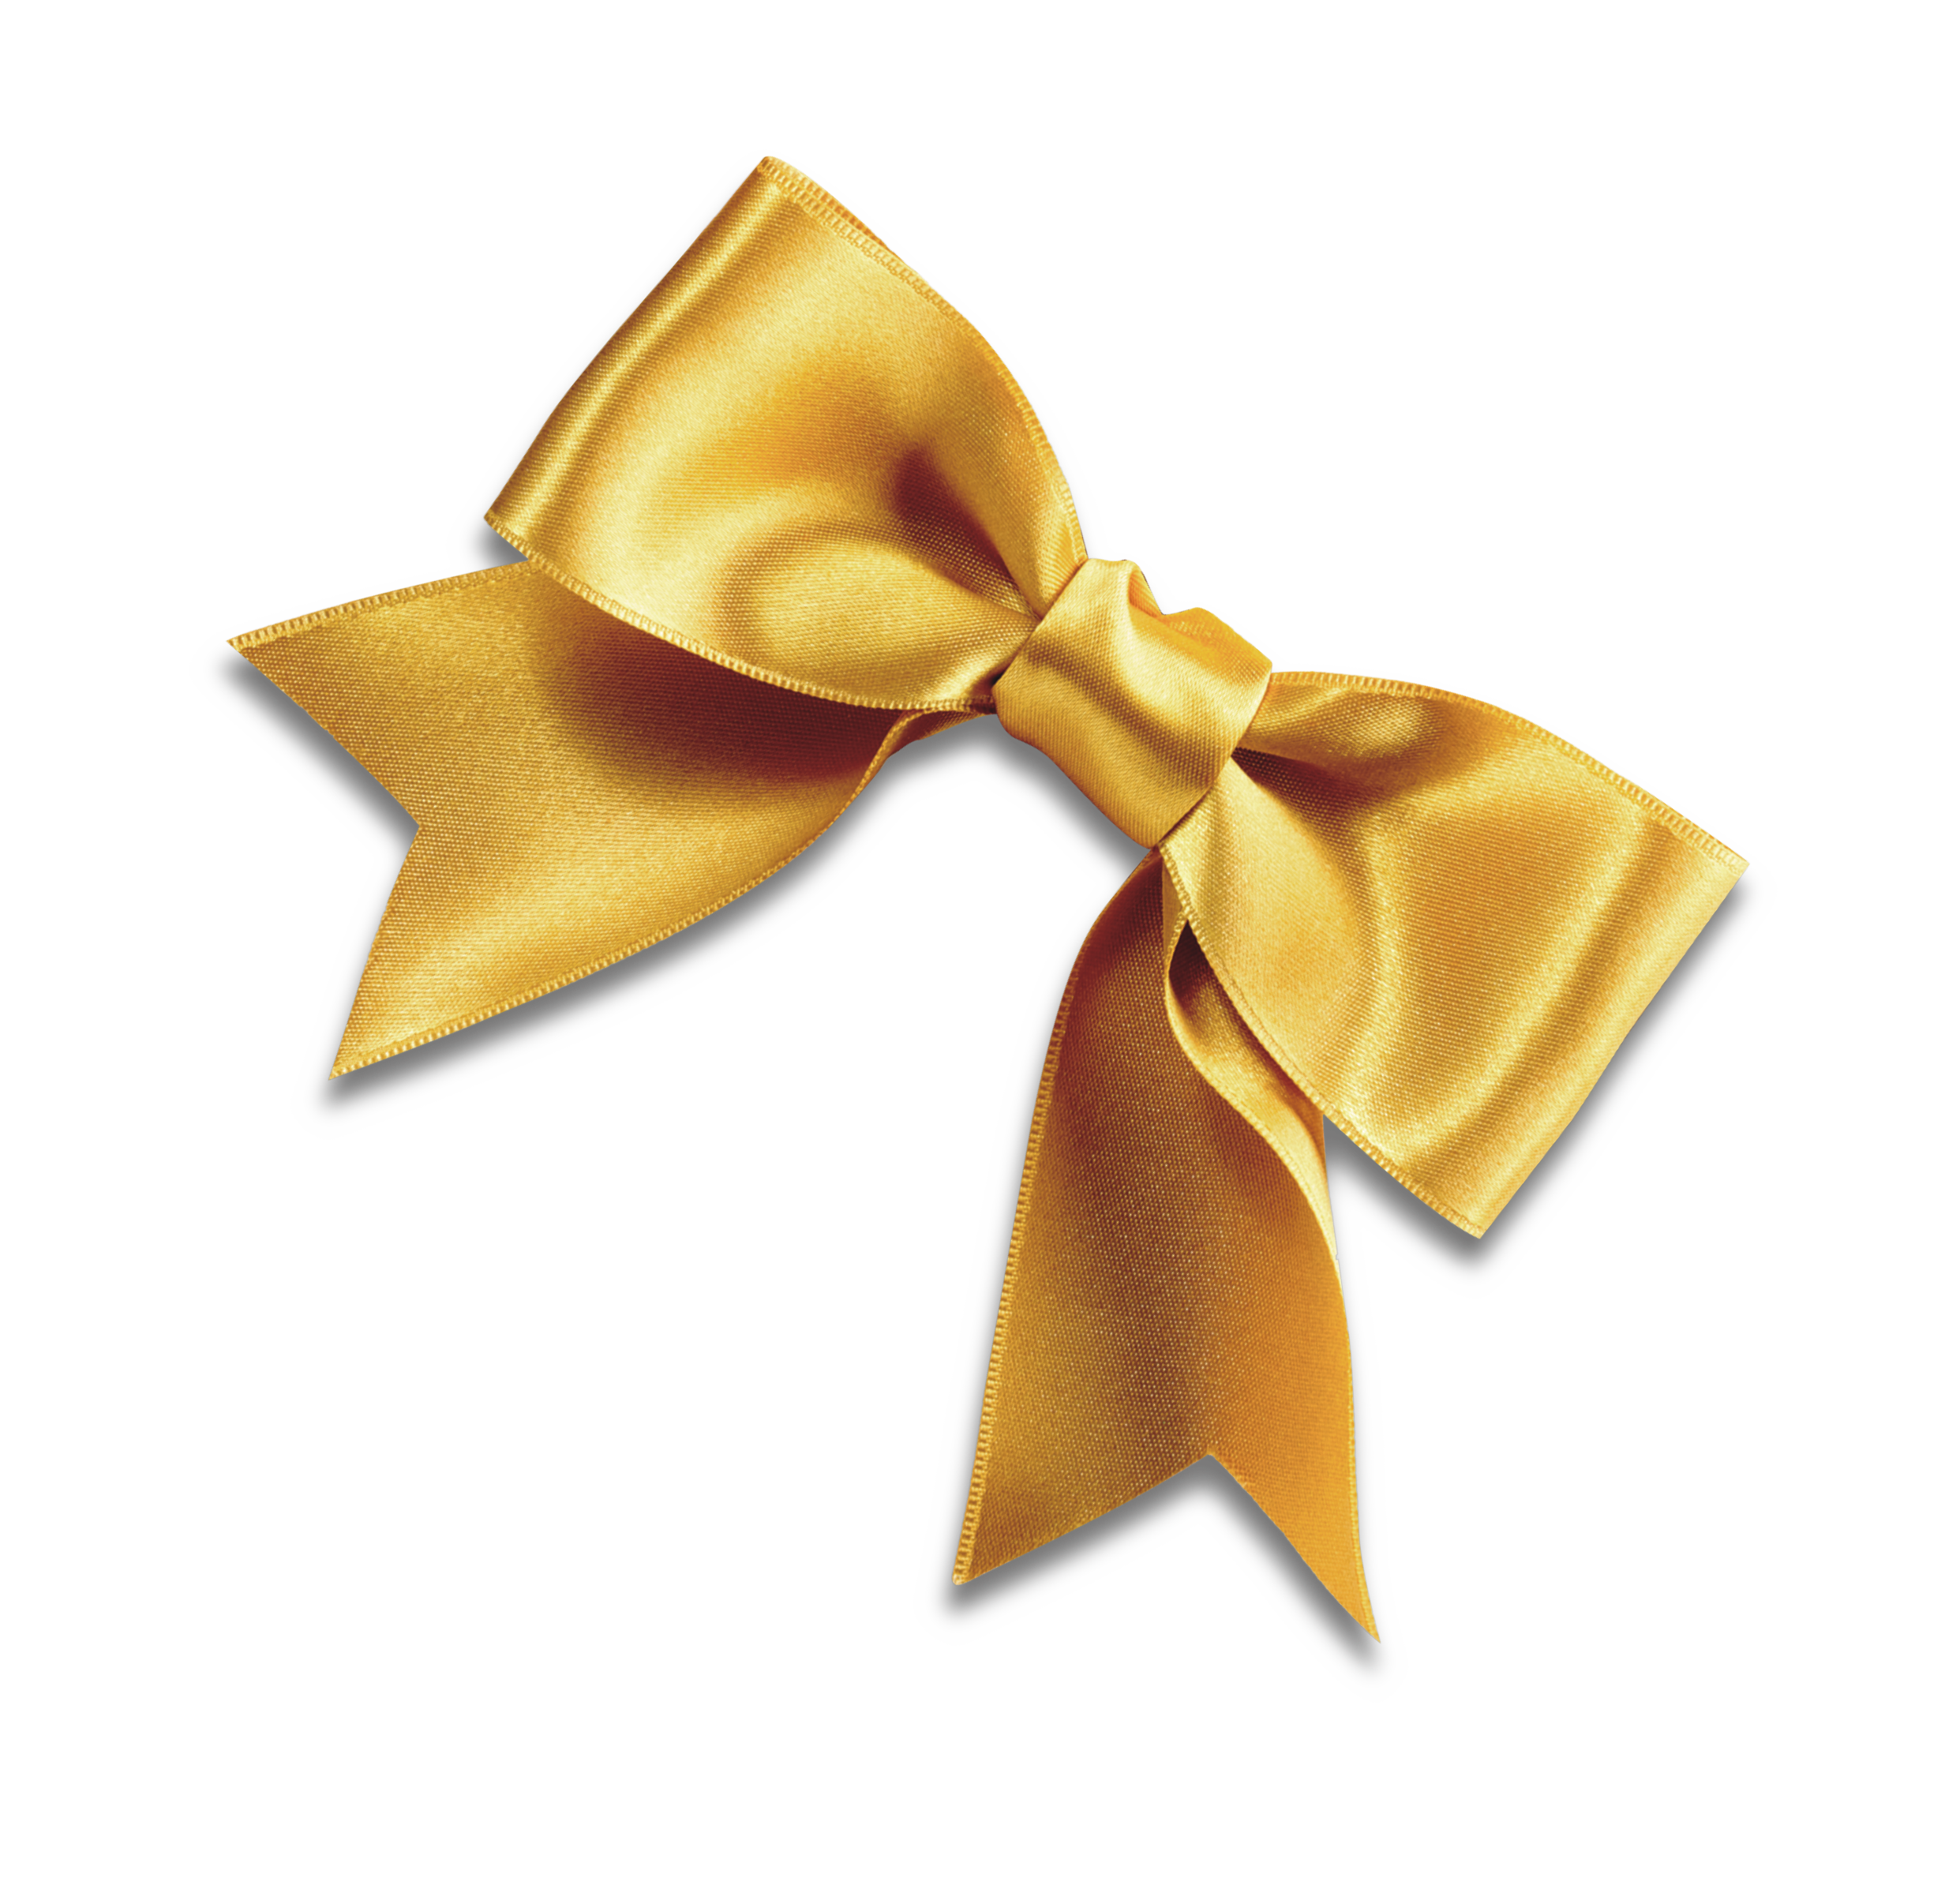 Gold ribbon bow png. Tie yellow shoelace knot